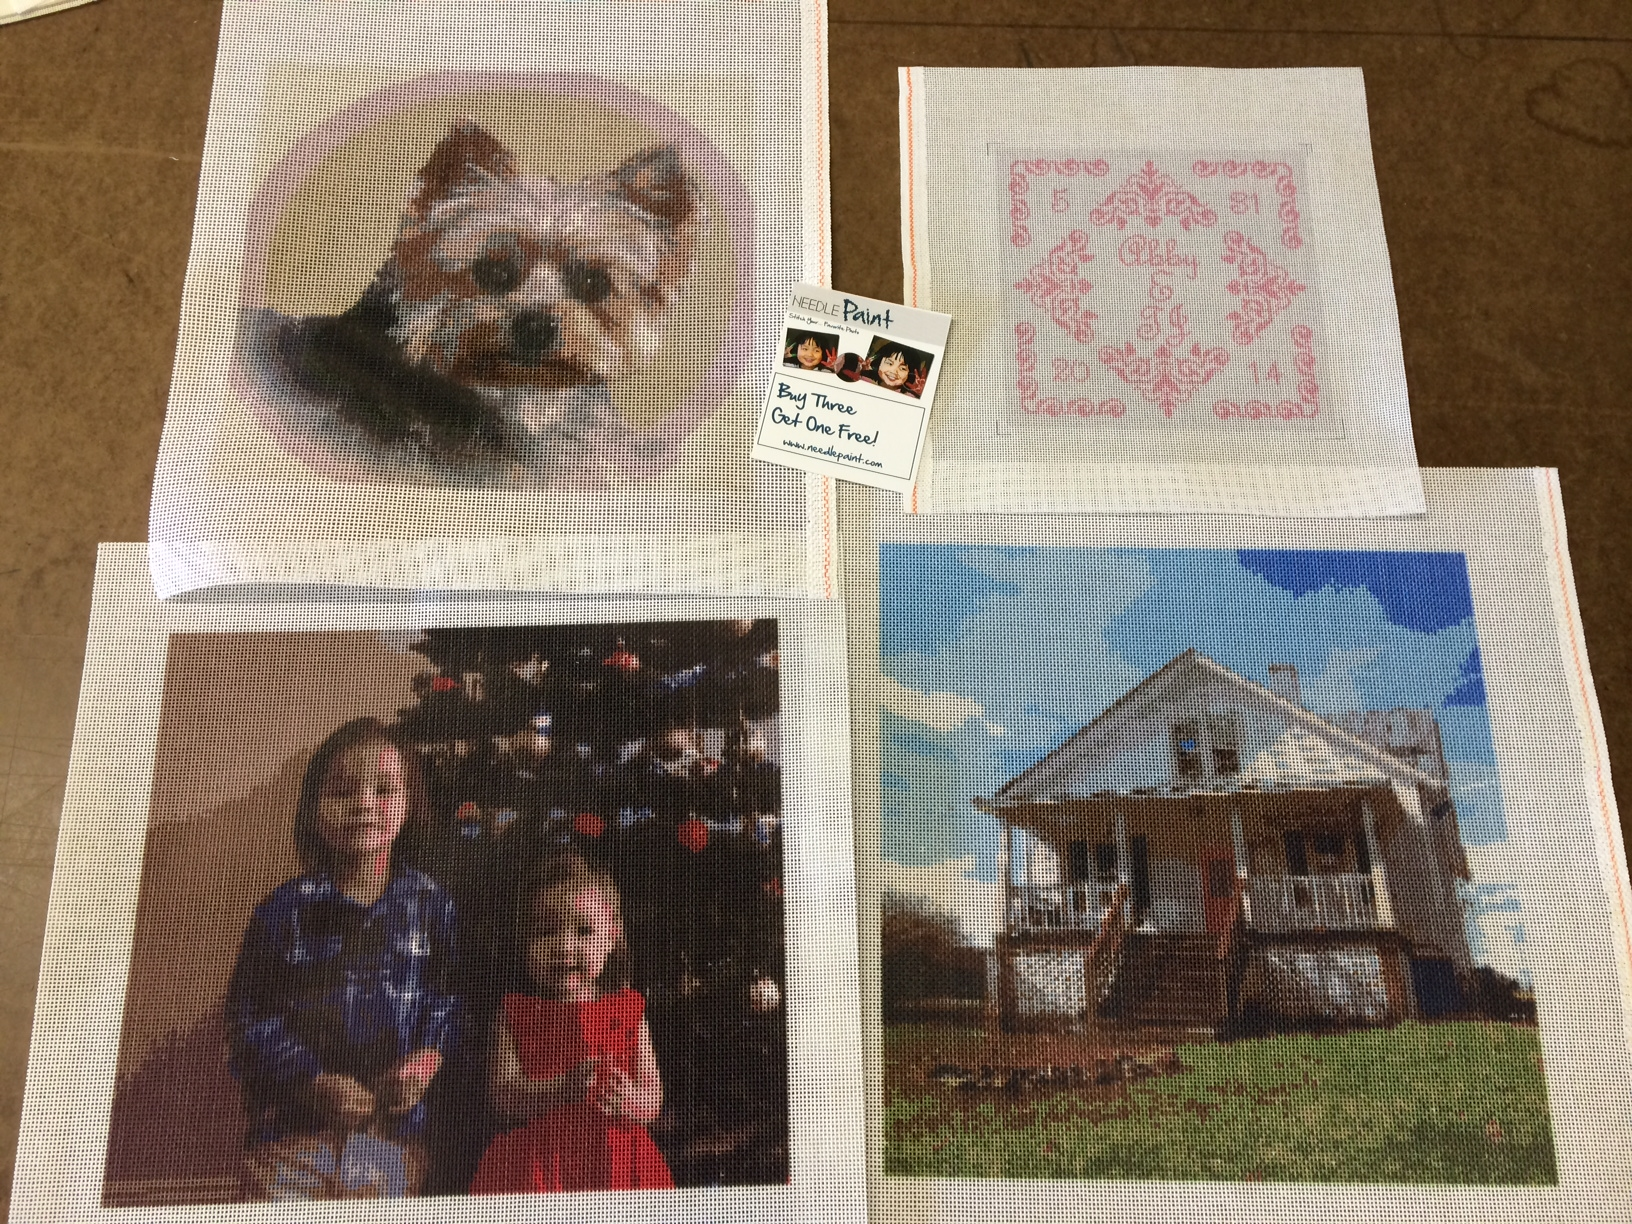 Needlepoint Canvases from a Photo